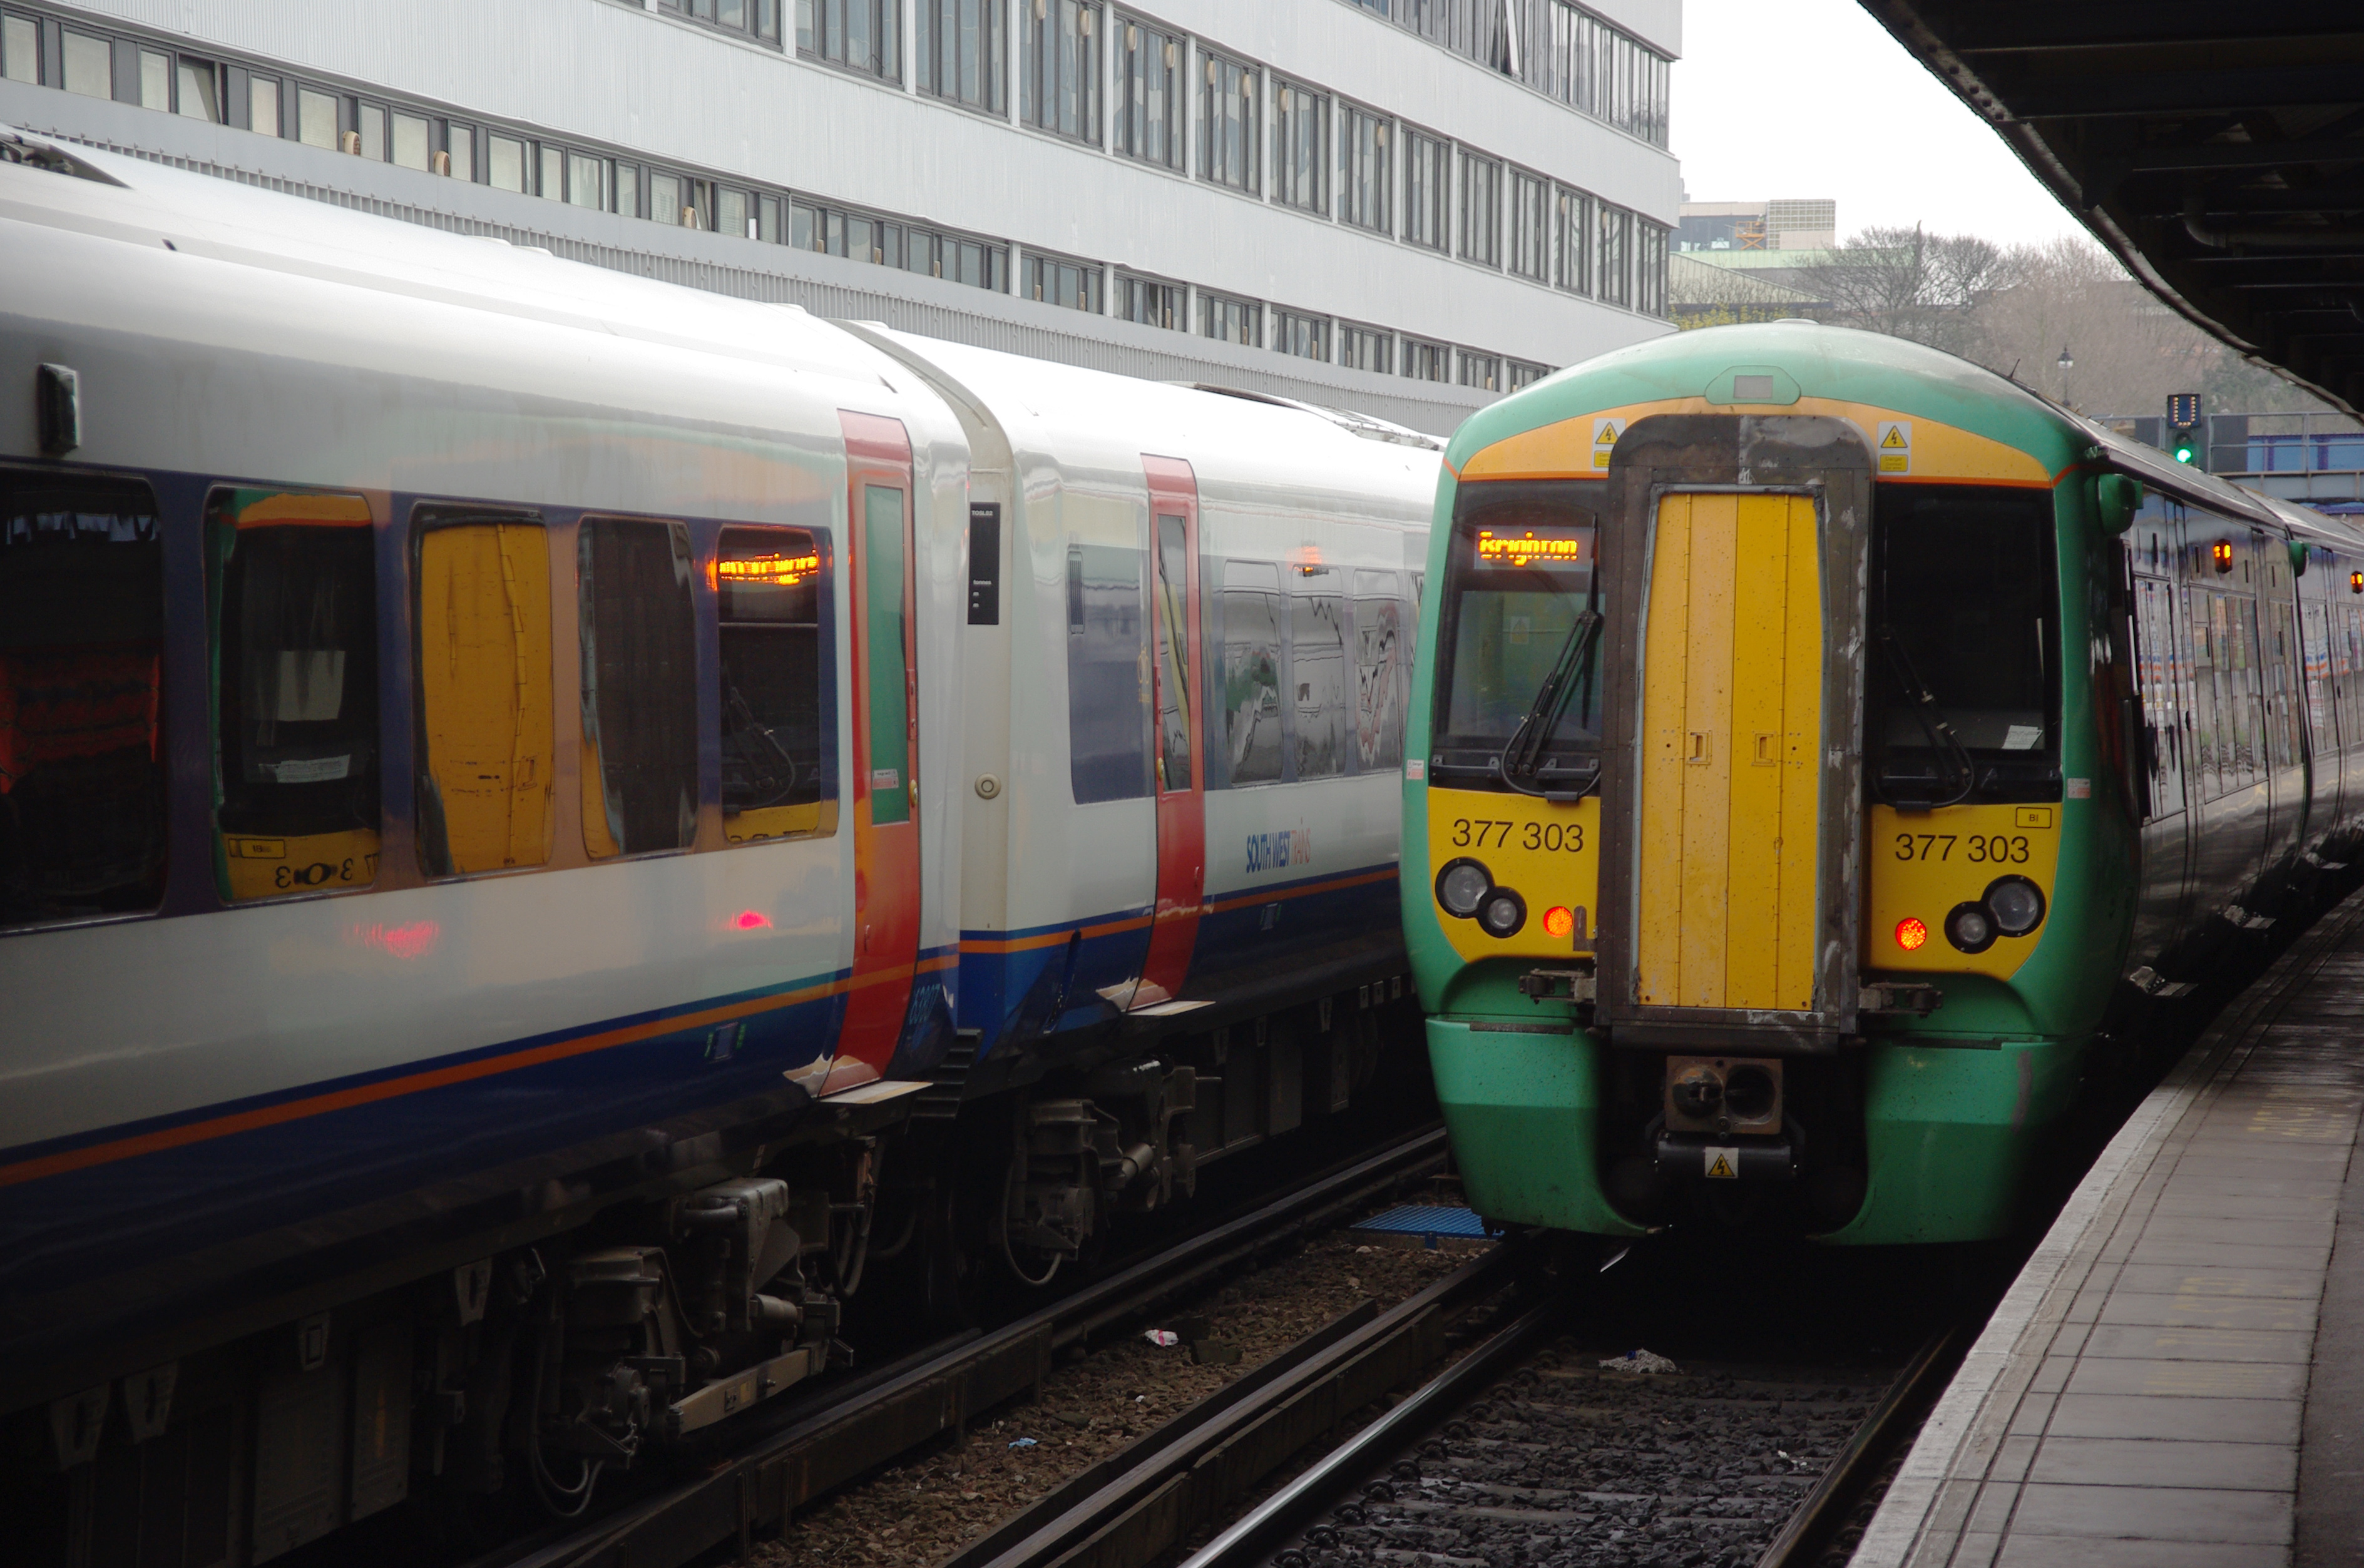 Southampton Central Station could face strikes over Christmas